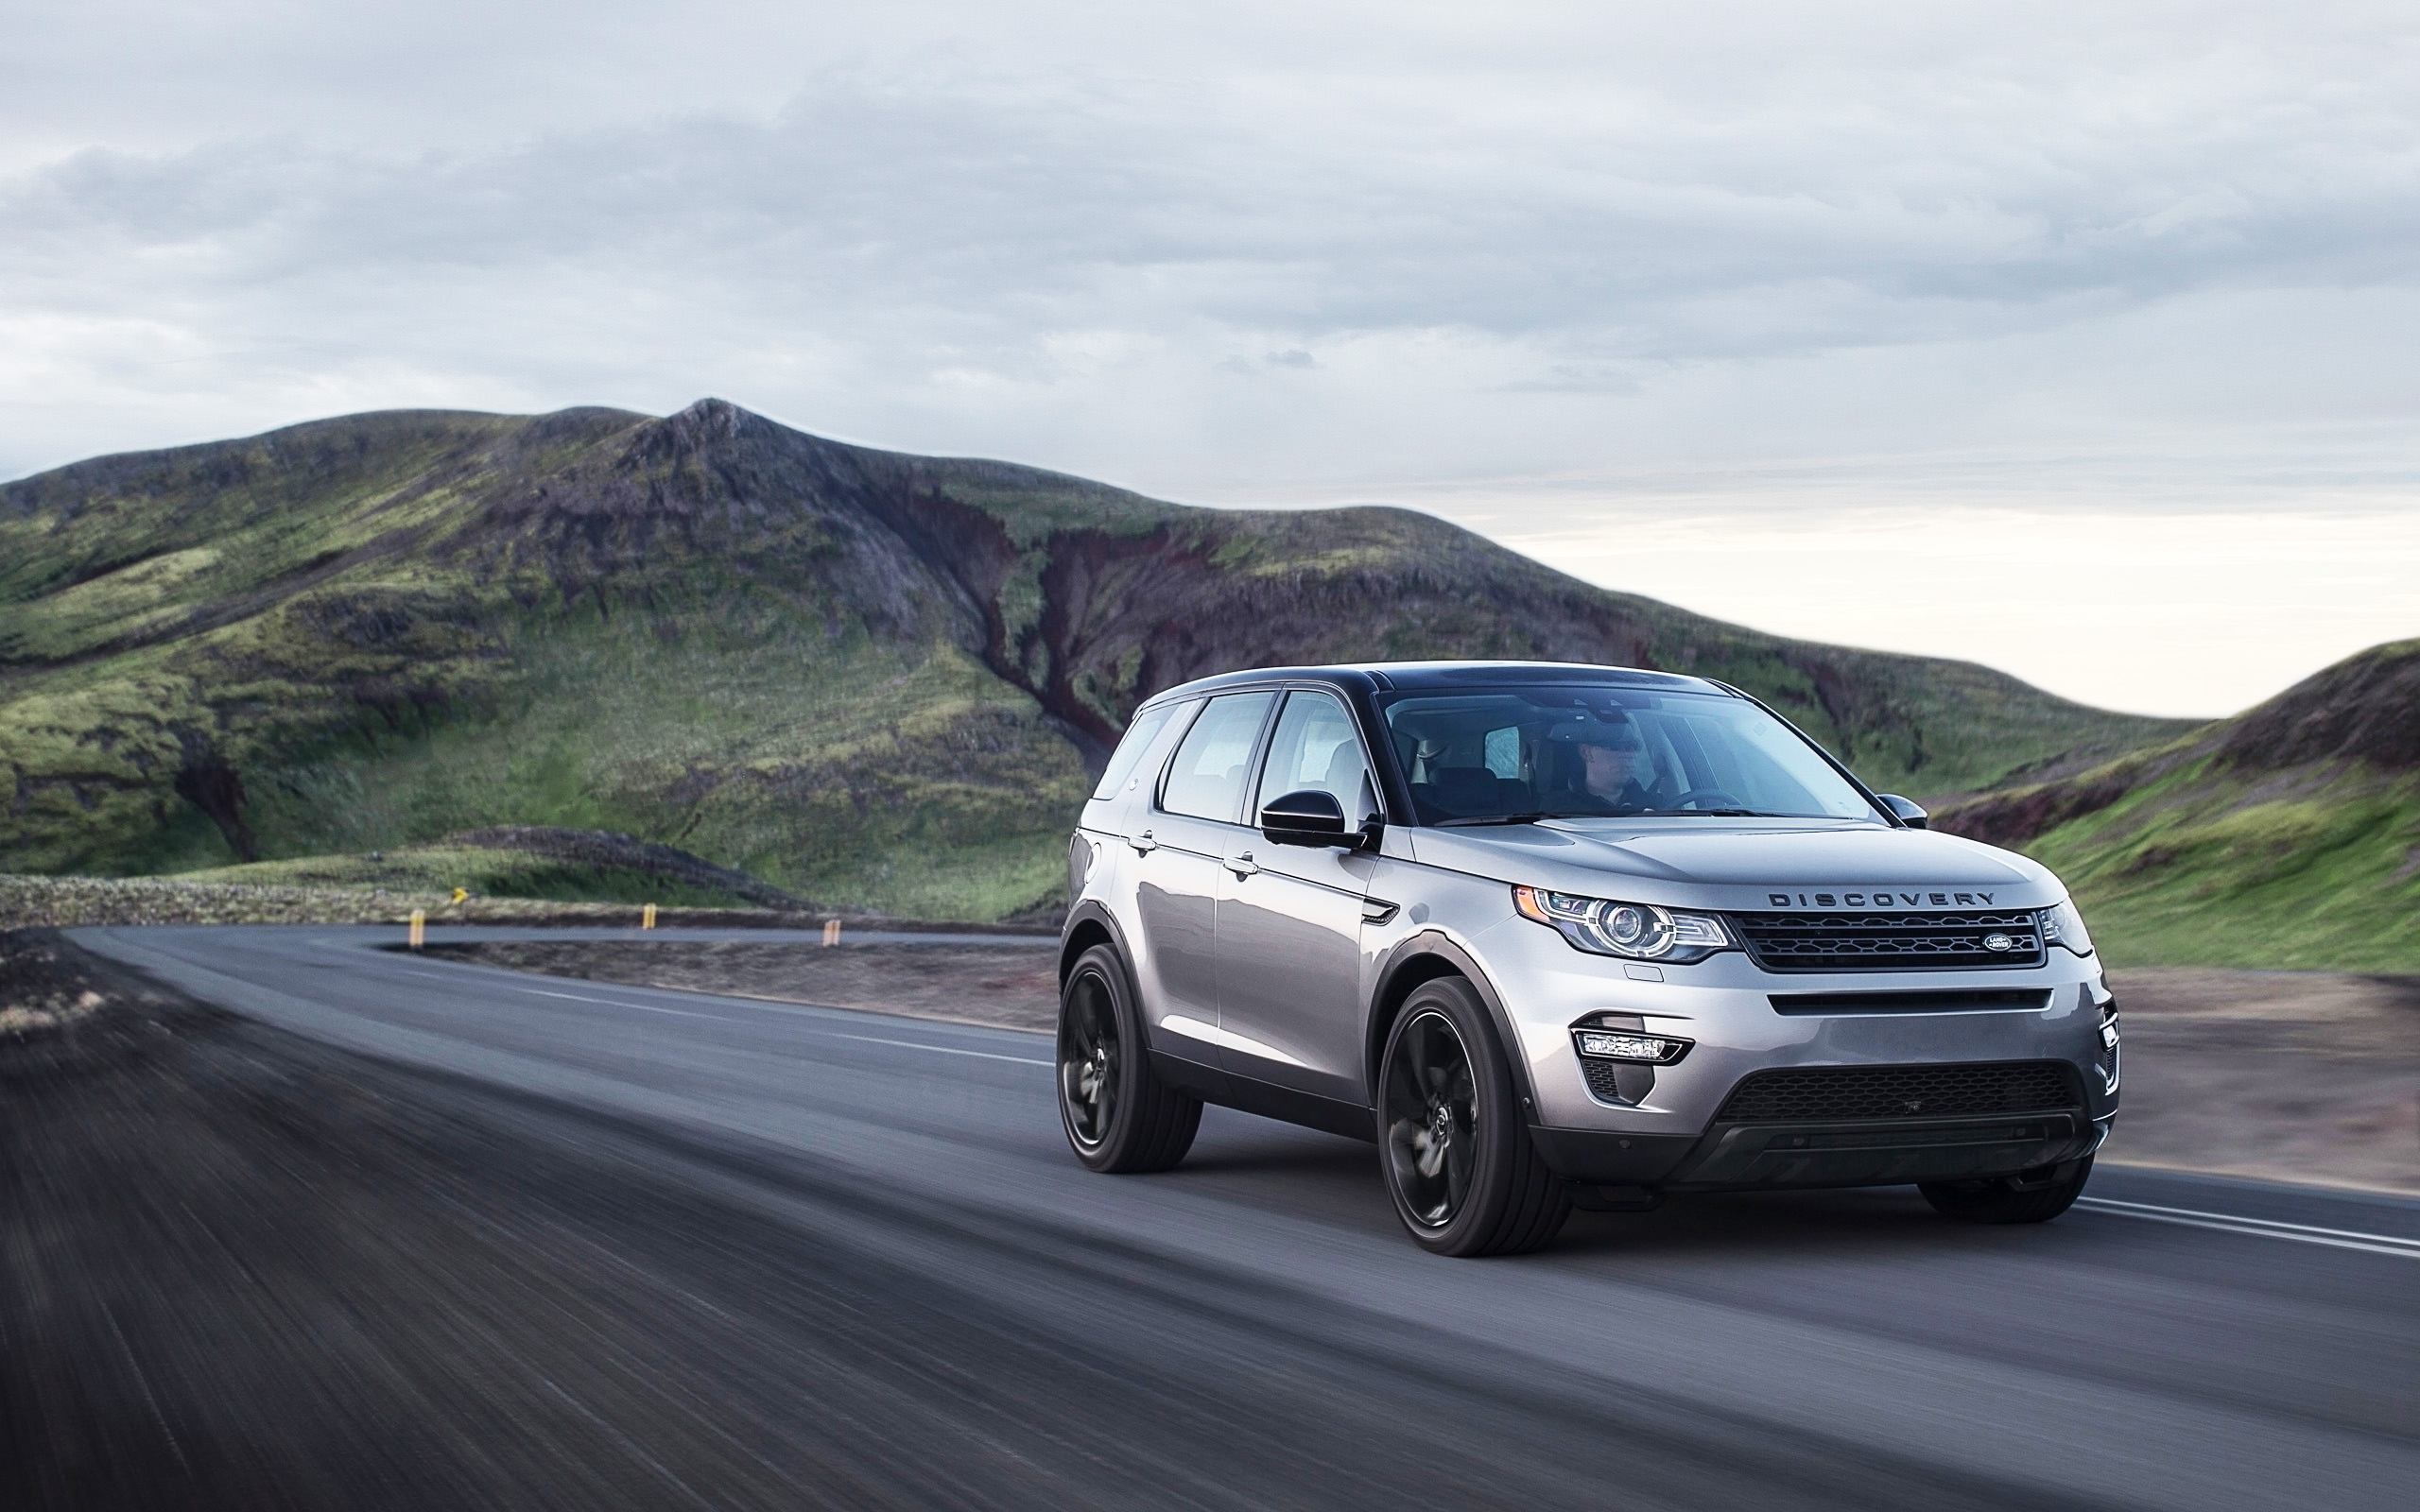 2015_land_rover_discovery_sport-wide (1)